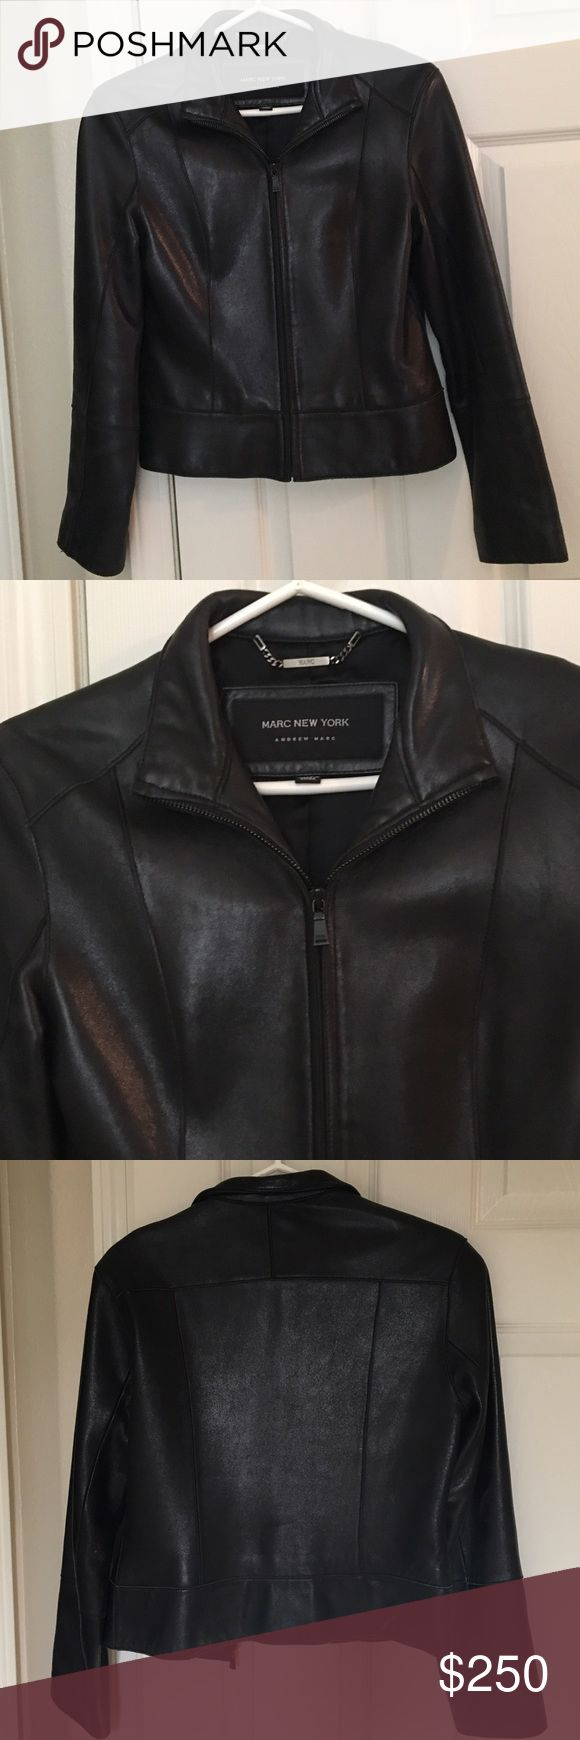 Andrew Marc soft lambskin leather moto jacket Andrew Marc soft lambskin leather moto jacket.  Marc New York.  Sleek and modern. Zipper front.  Leather jacket. Great worn condition! Andrew Marc Jackets & Coats